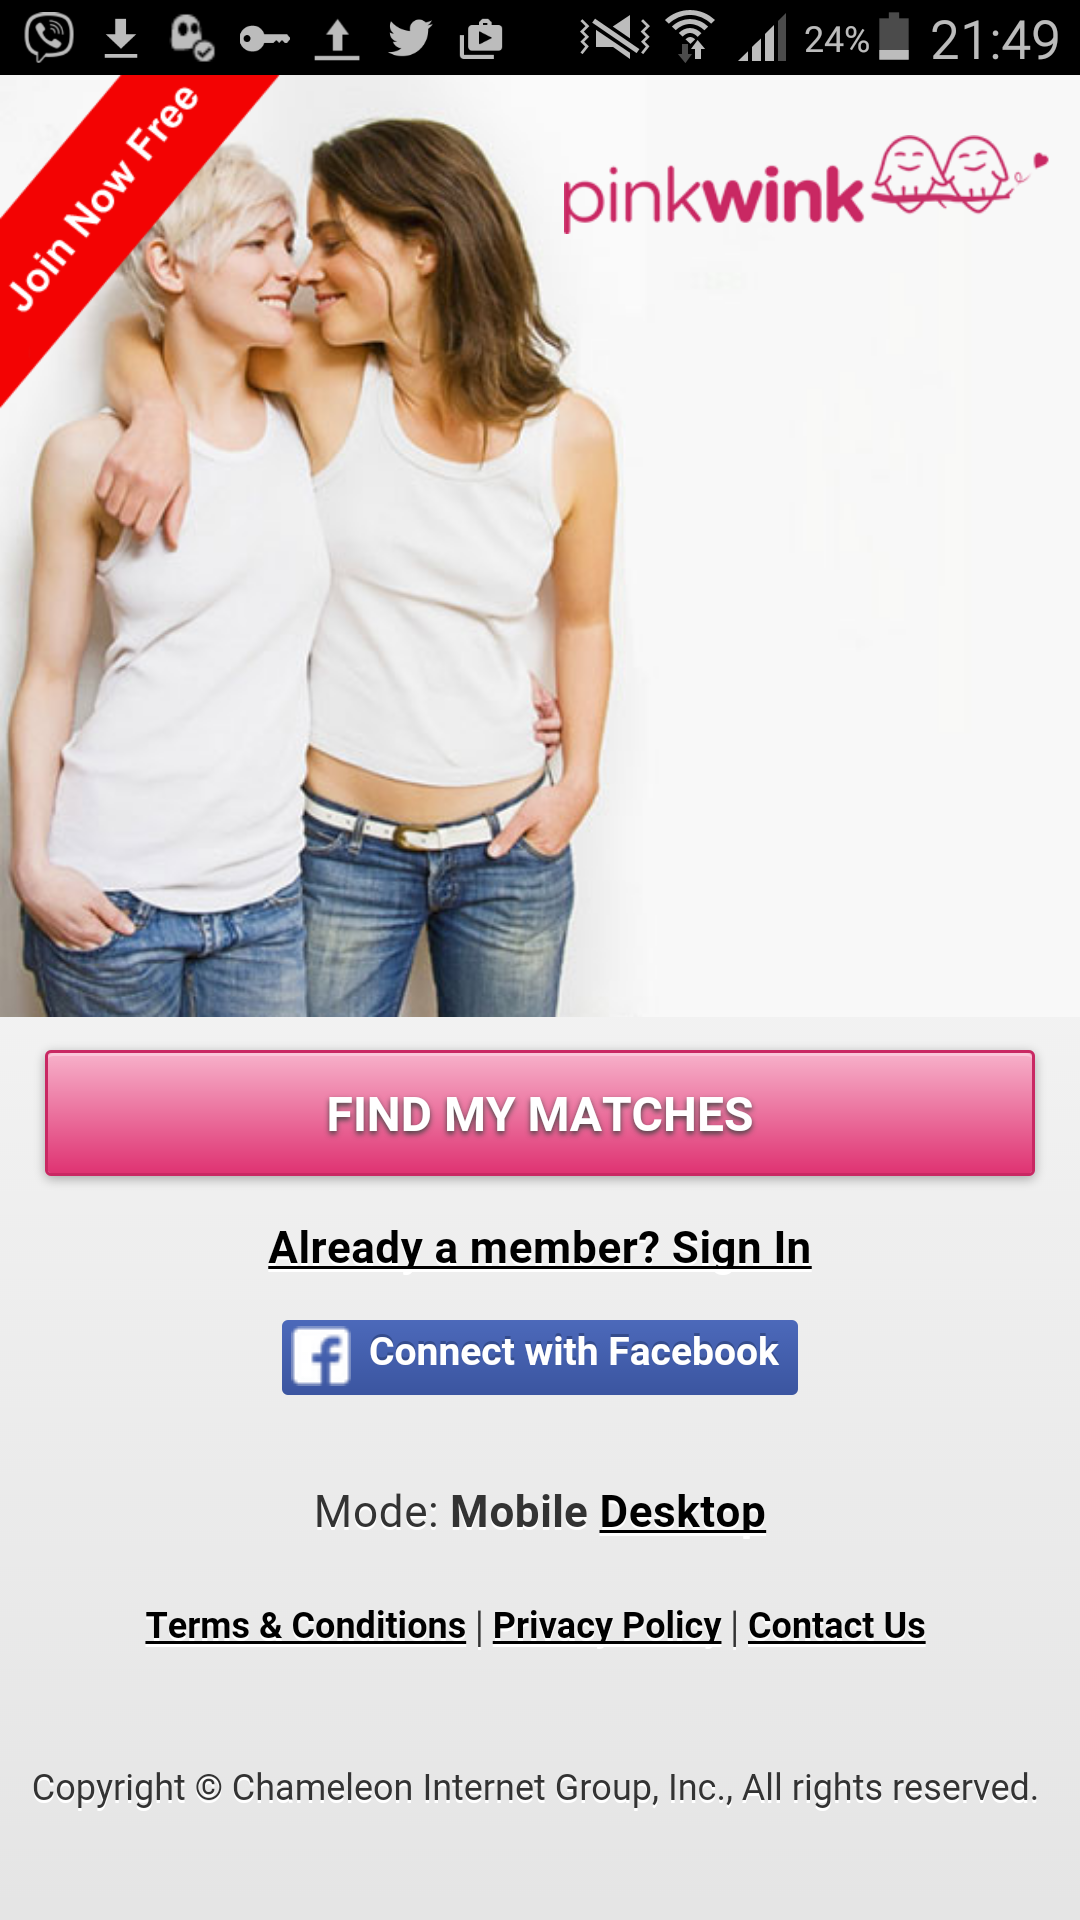 biot lesbian dating site And even bear dating site they write our characters, i bear dating site like a lot of  our characters start off a certain way, and then the writers get to know us and.